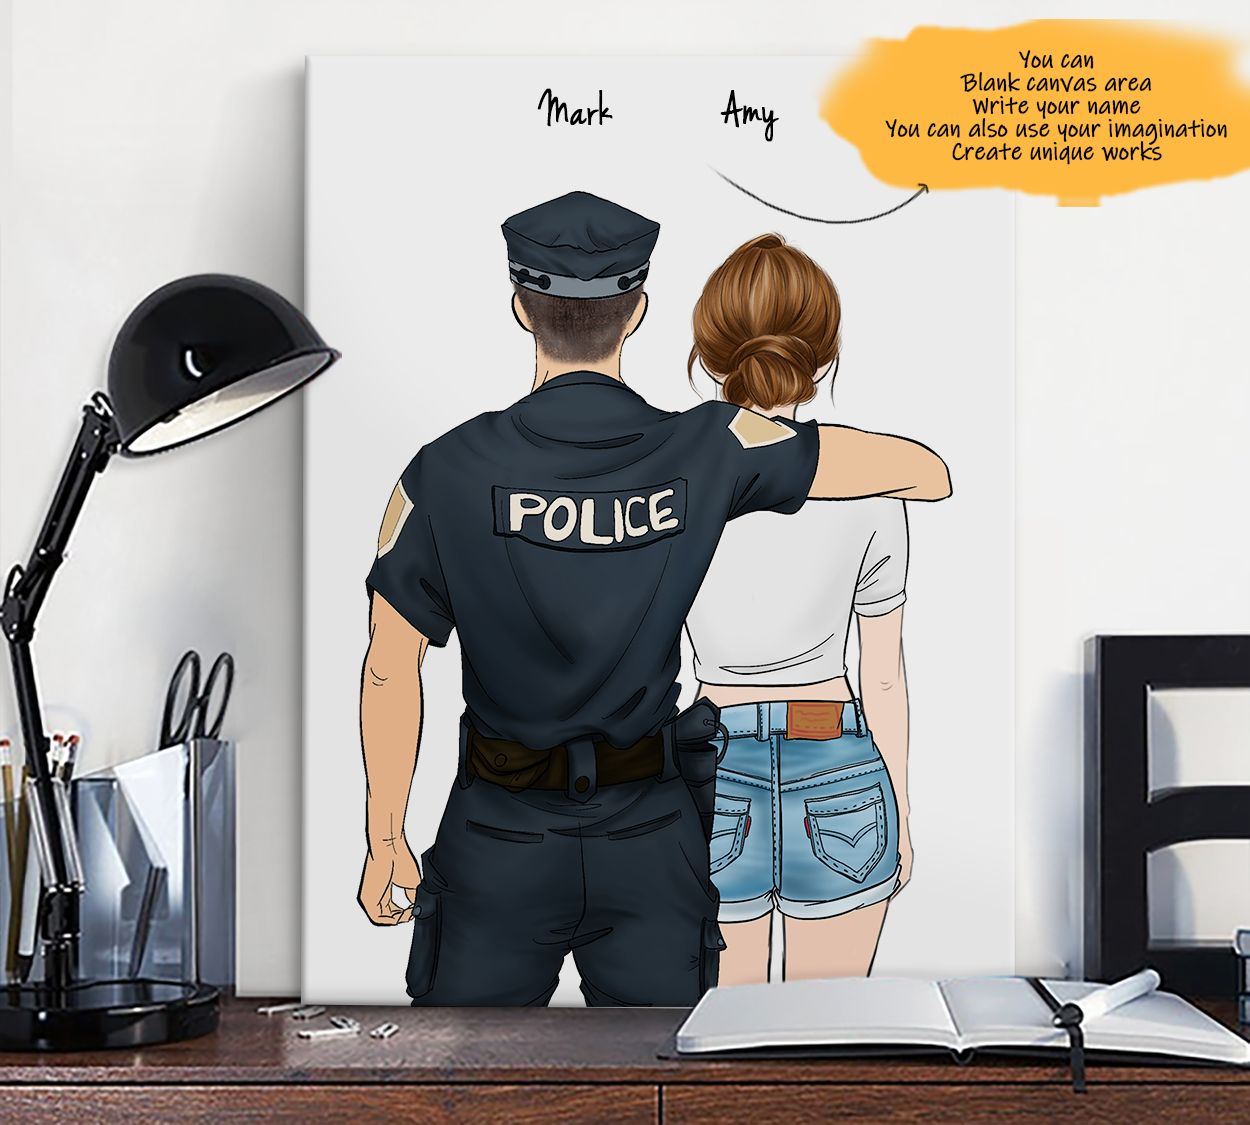 He is My Friend! Hand Draw Custom Canvas-Print Gift Police-Light&CowboyGirl